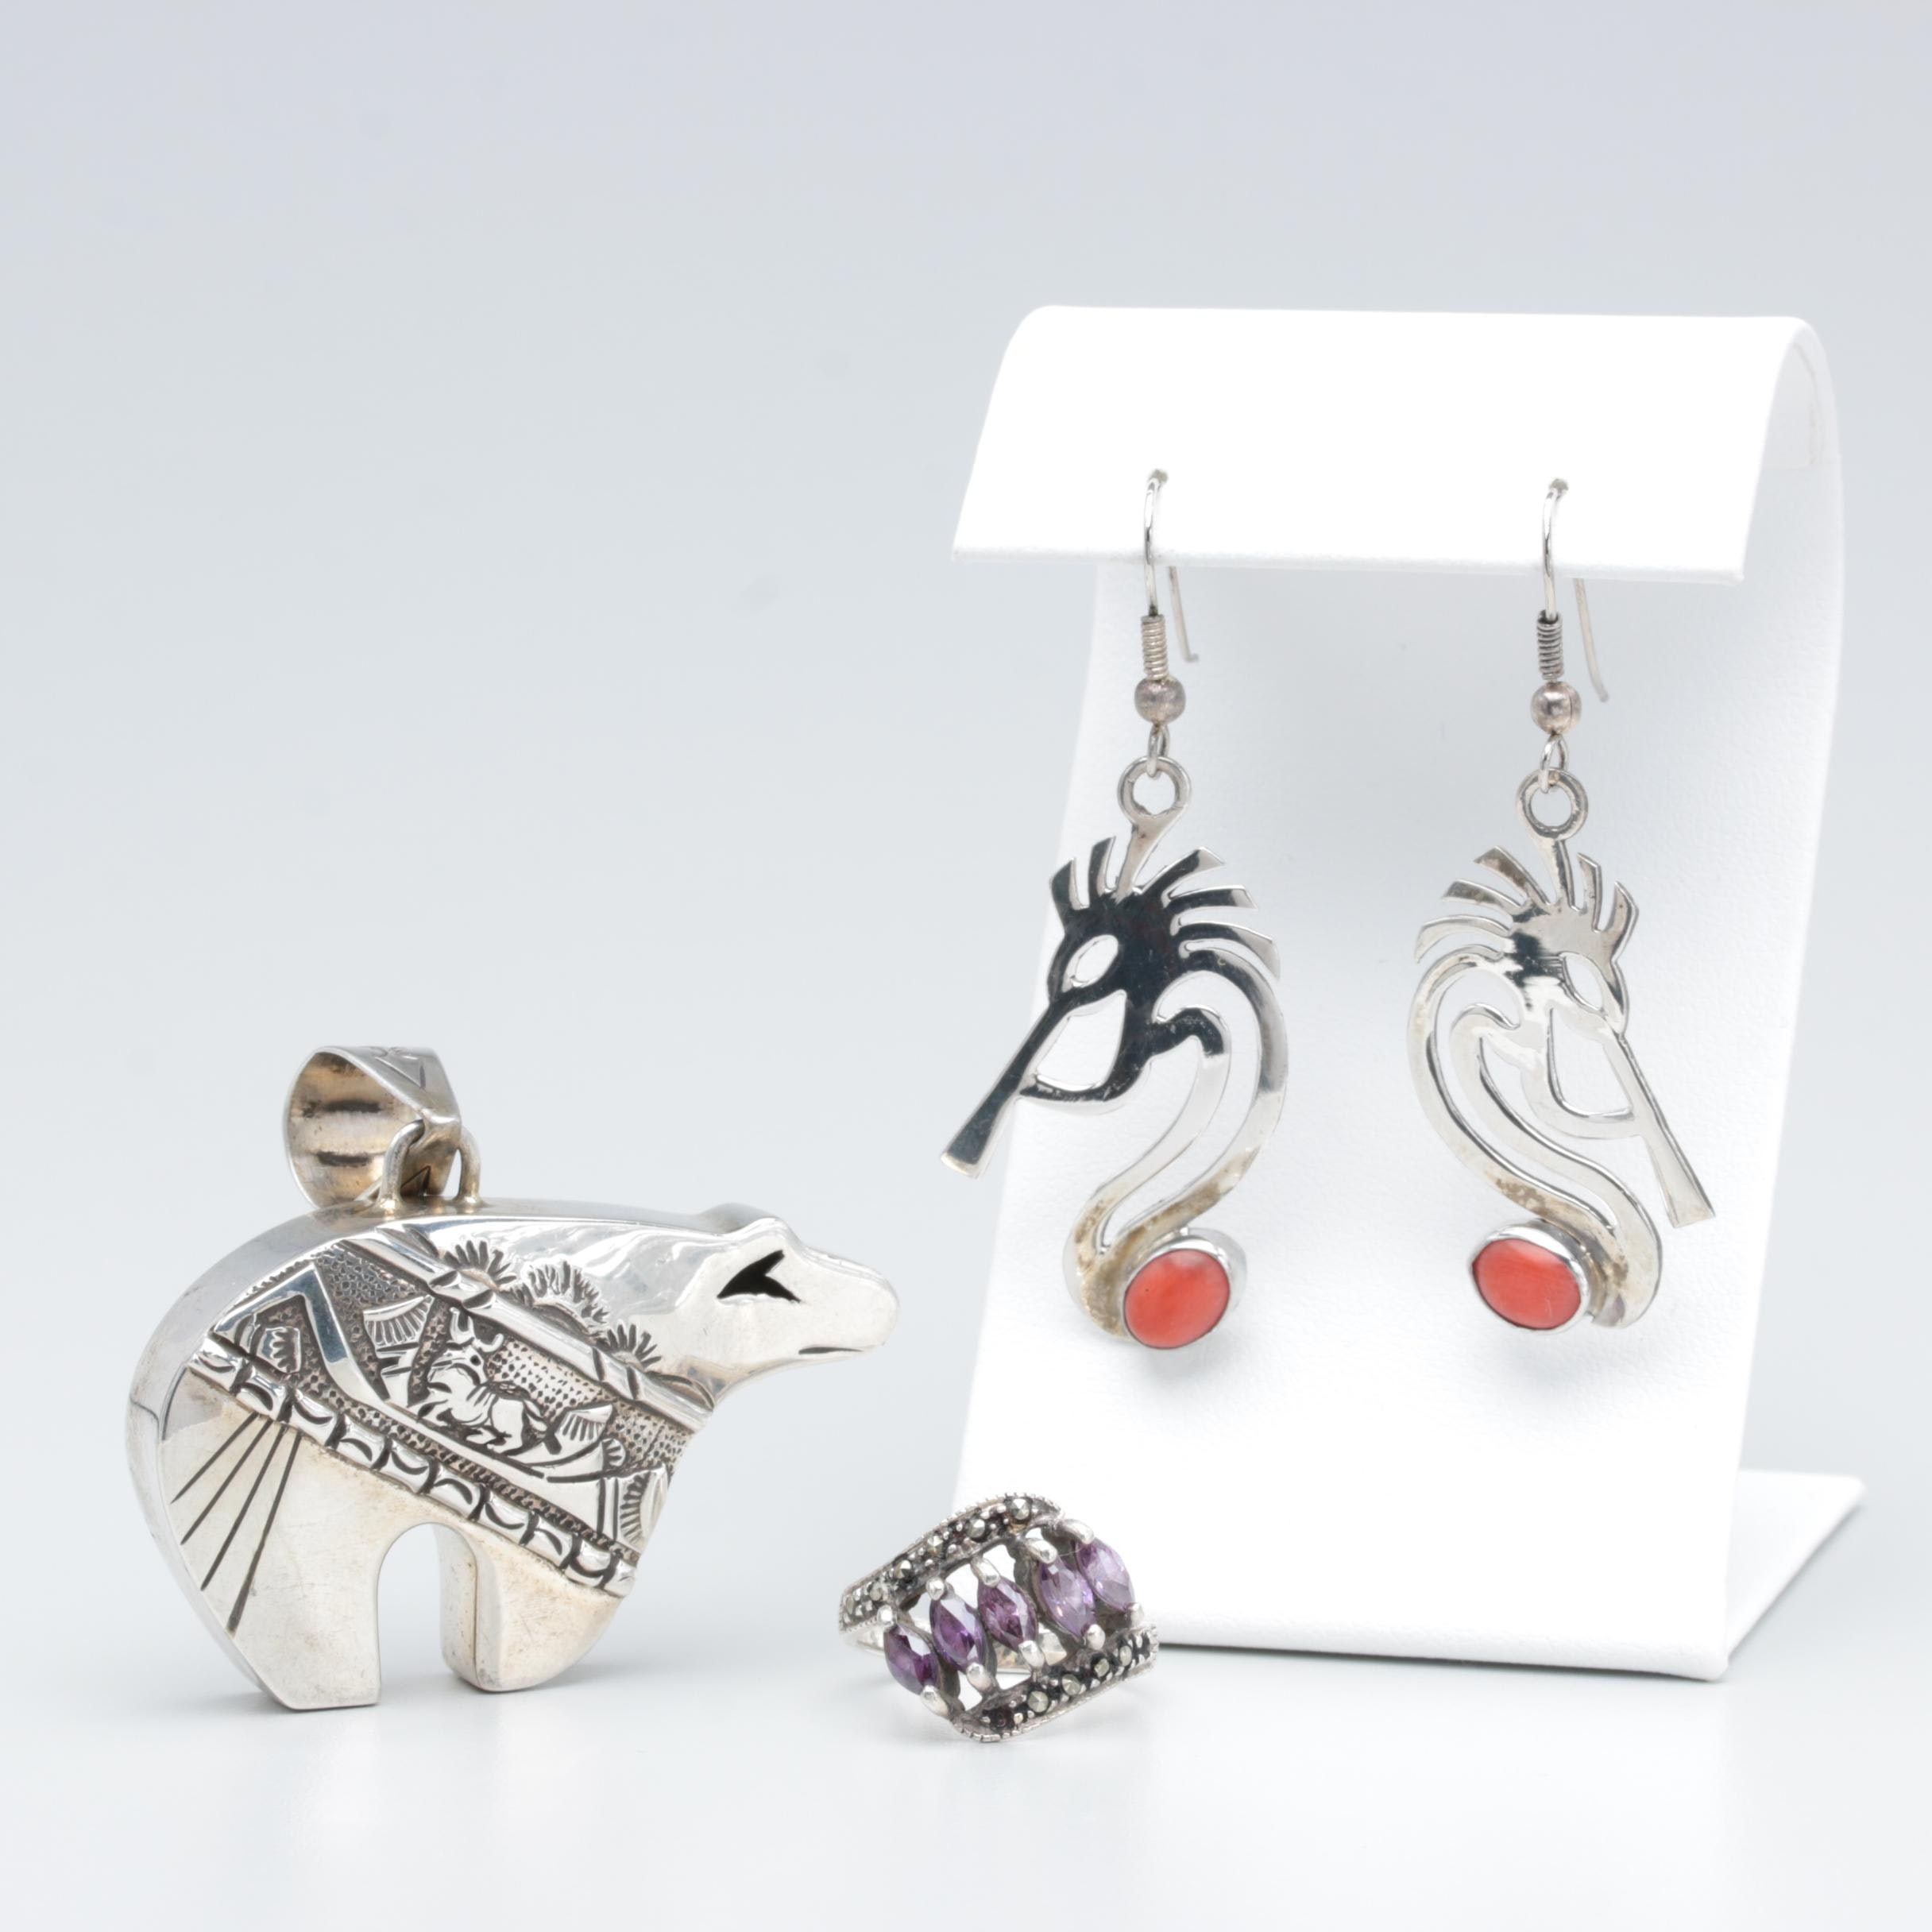 Assorted Sterling Marcasite, Coral, and Cubic Zircon Jewelry Featuring Kokopelli